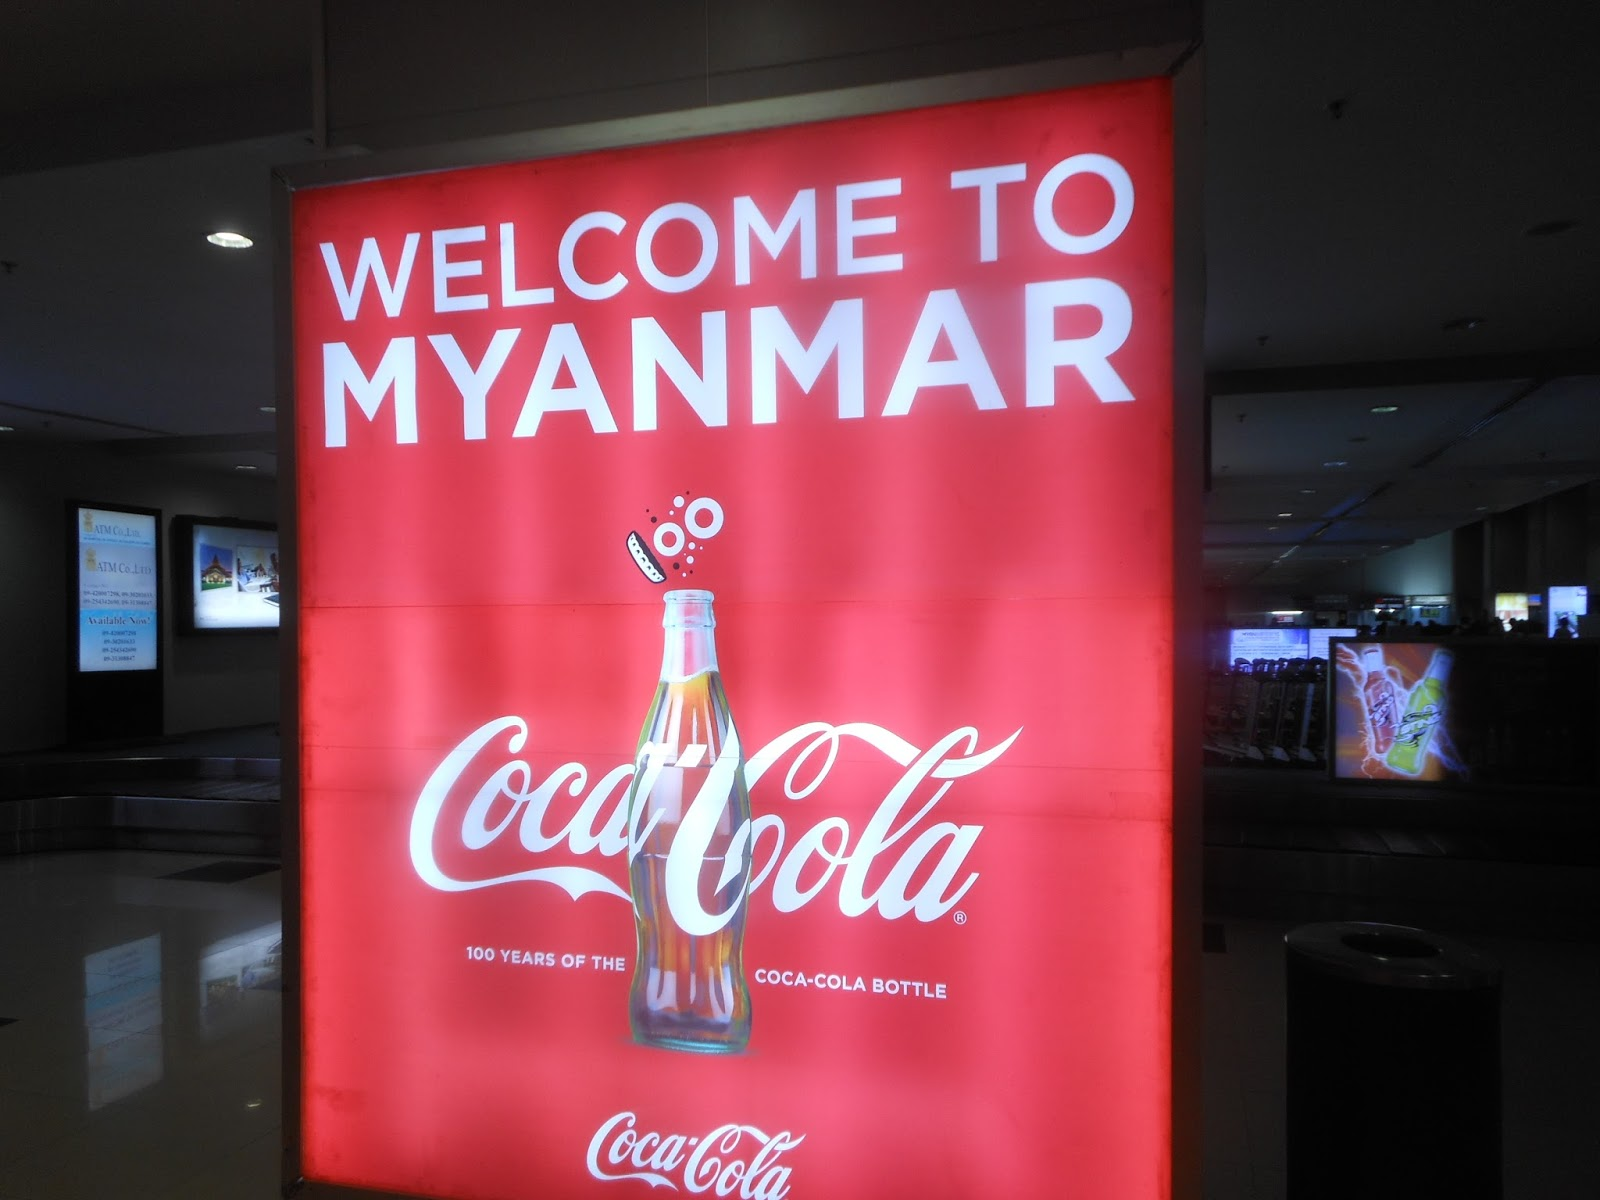 In the Kingdom of Thailand: Welcome to Myanmar ဗမာ